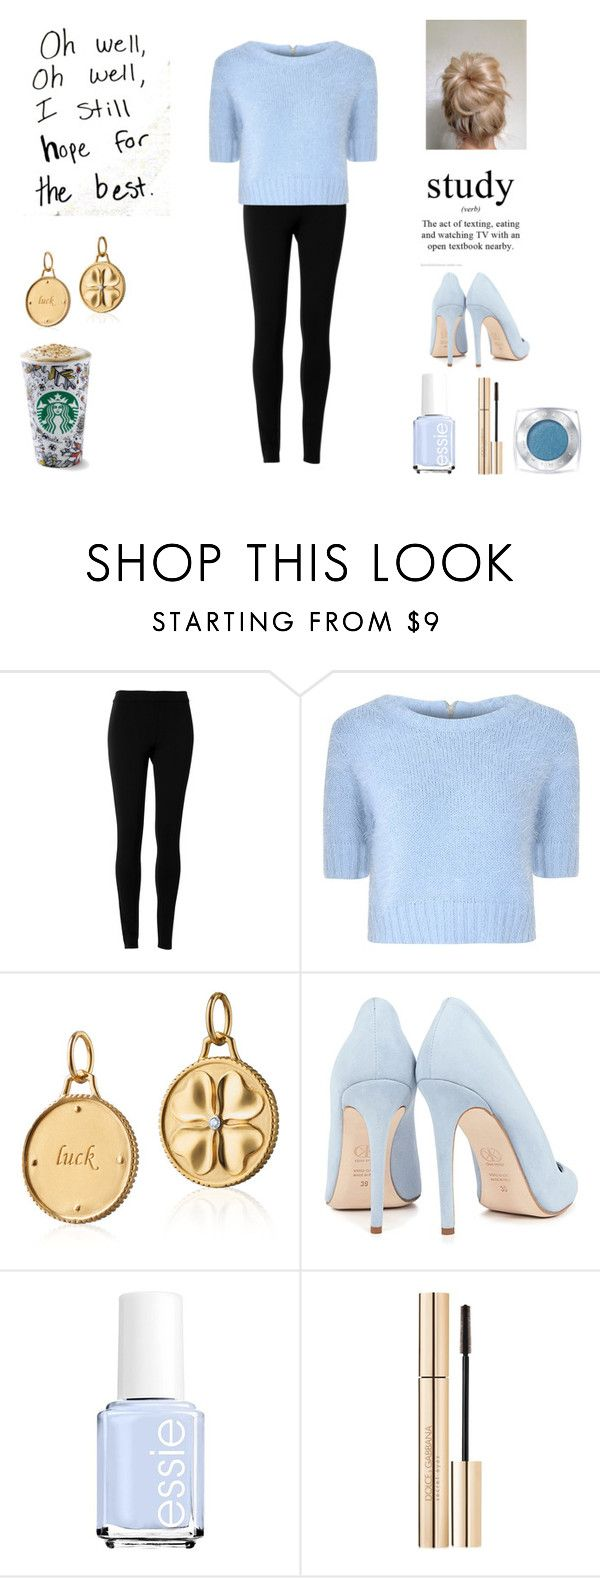 """""""P.S.A.T"""" by dreamingdaisy ❤ liked on Polyvore featuring Max Studio, Glamorous, Blue Nile, Dee Keller, Essie, Dolce&Gabbana and L'Oréal Paris"""